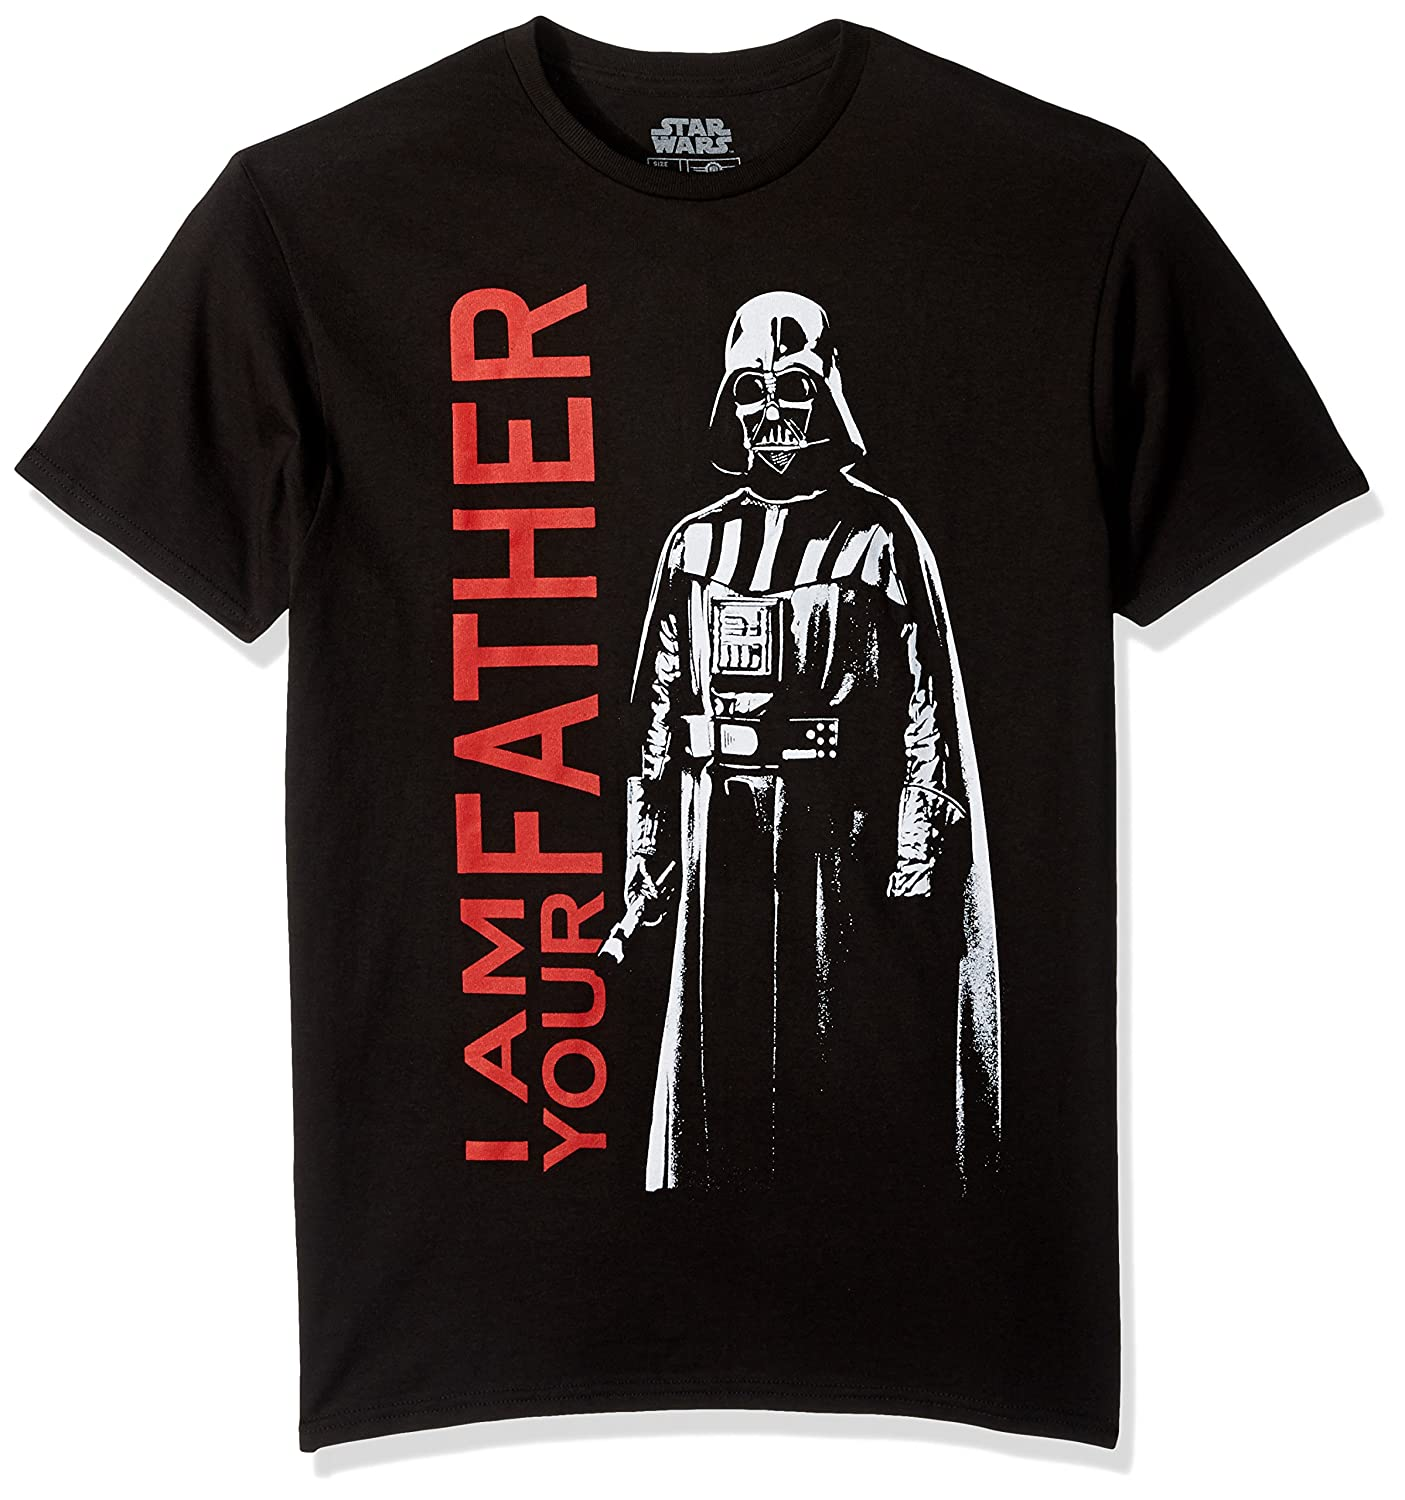 Star Wars Mens Darkest Family Short Sleeve T-Shirt Mad Engine Inc. SWSRD8UMSC1P1XX